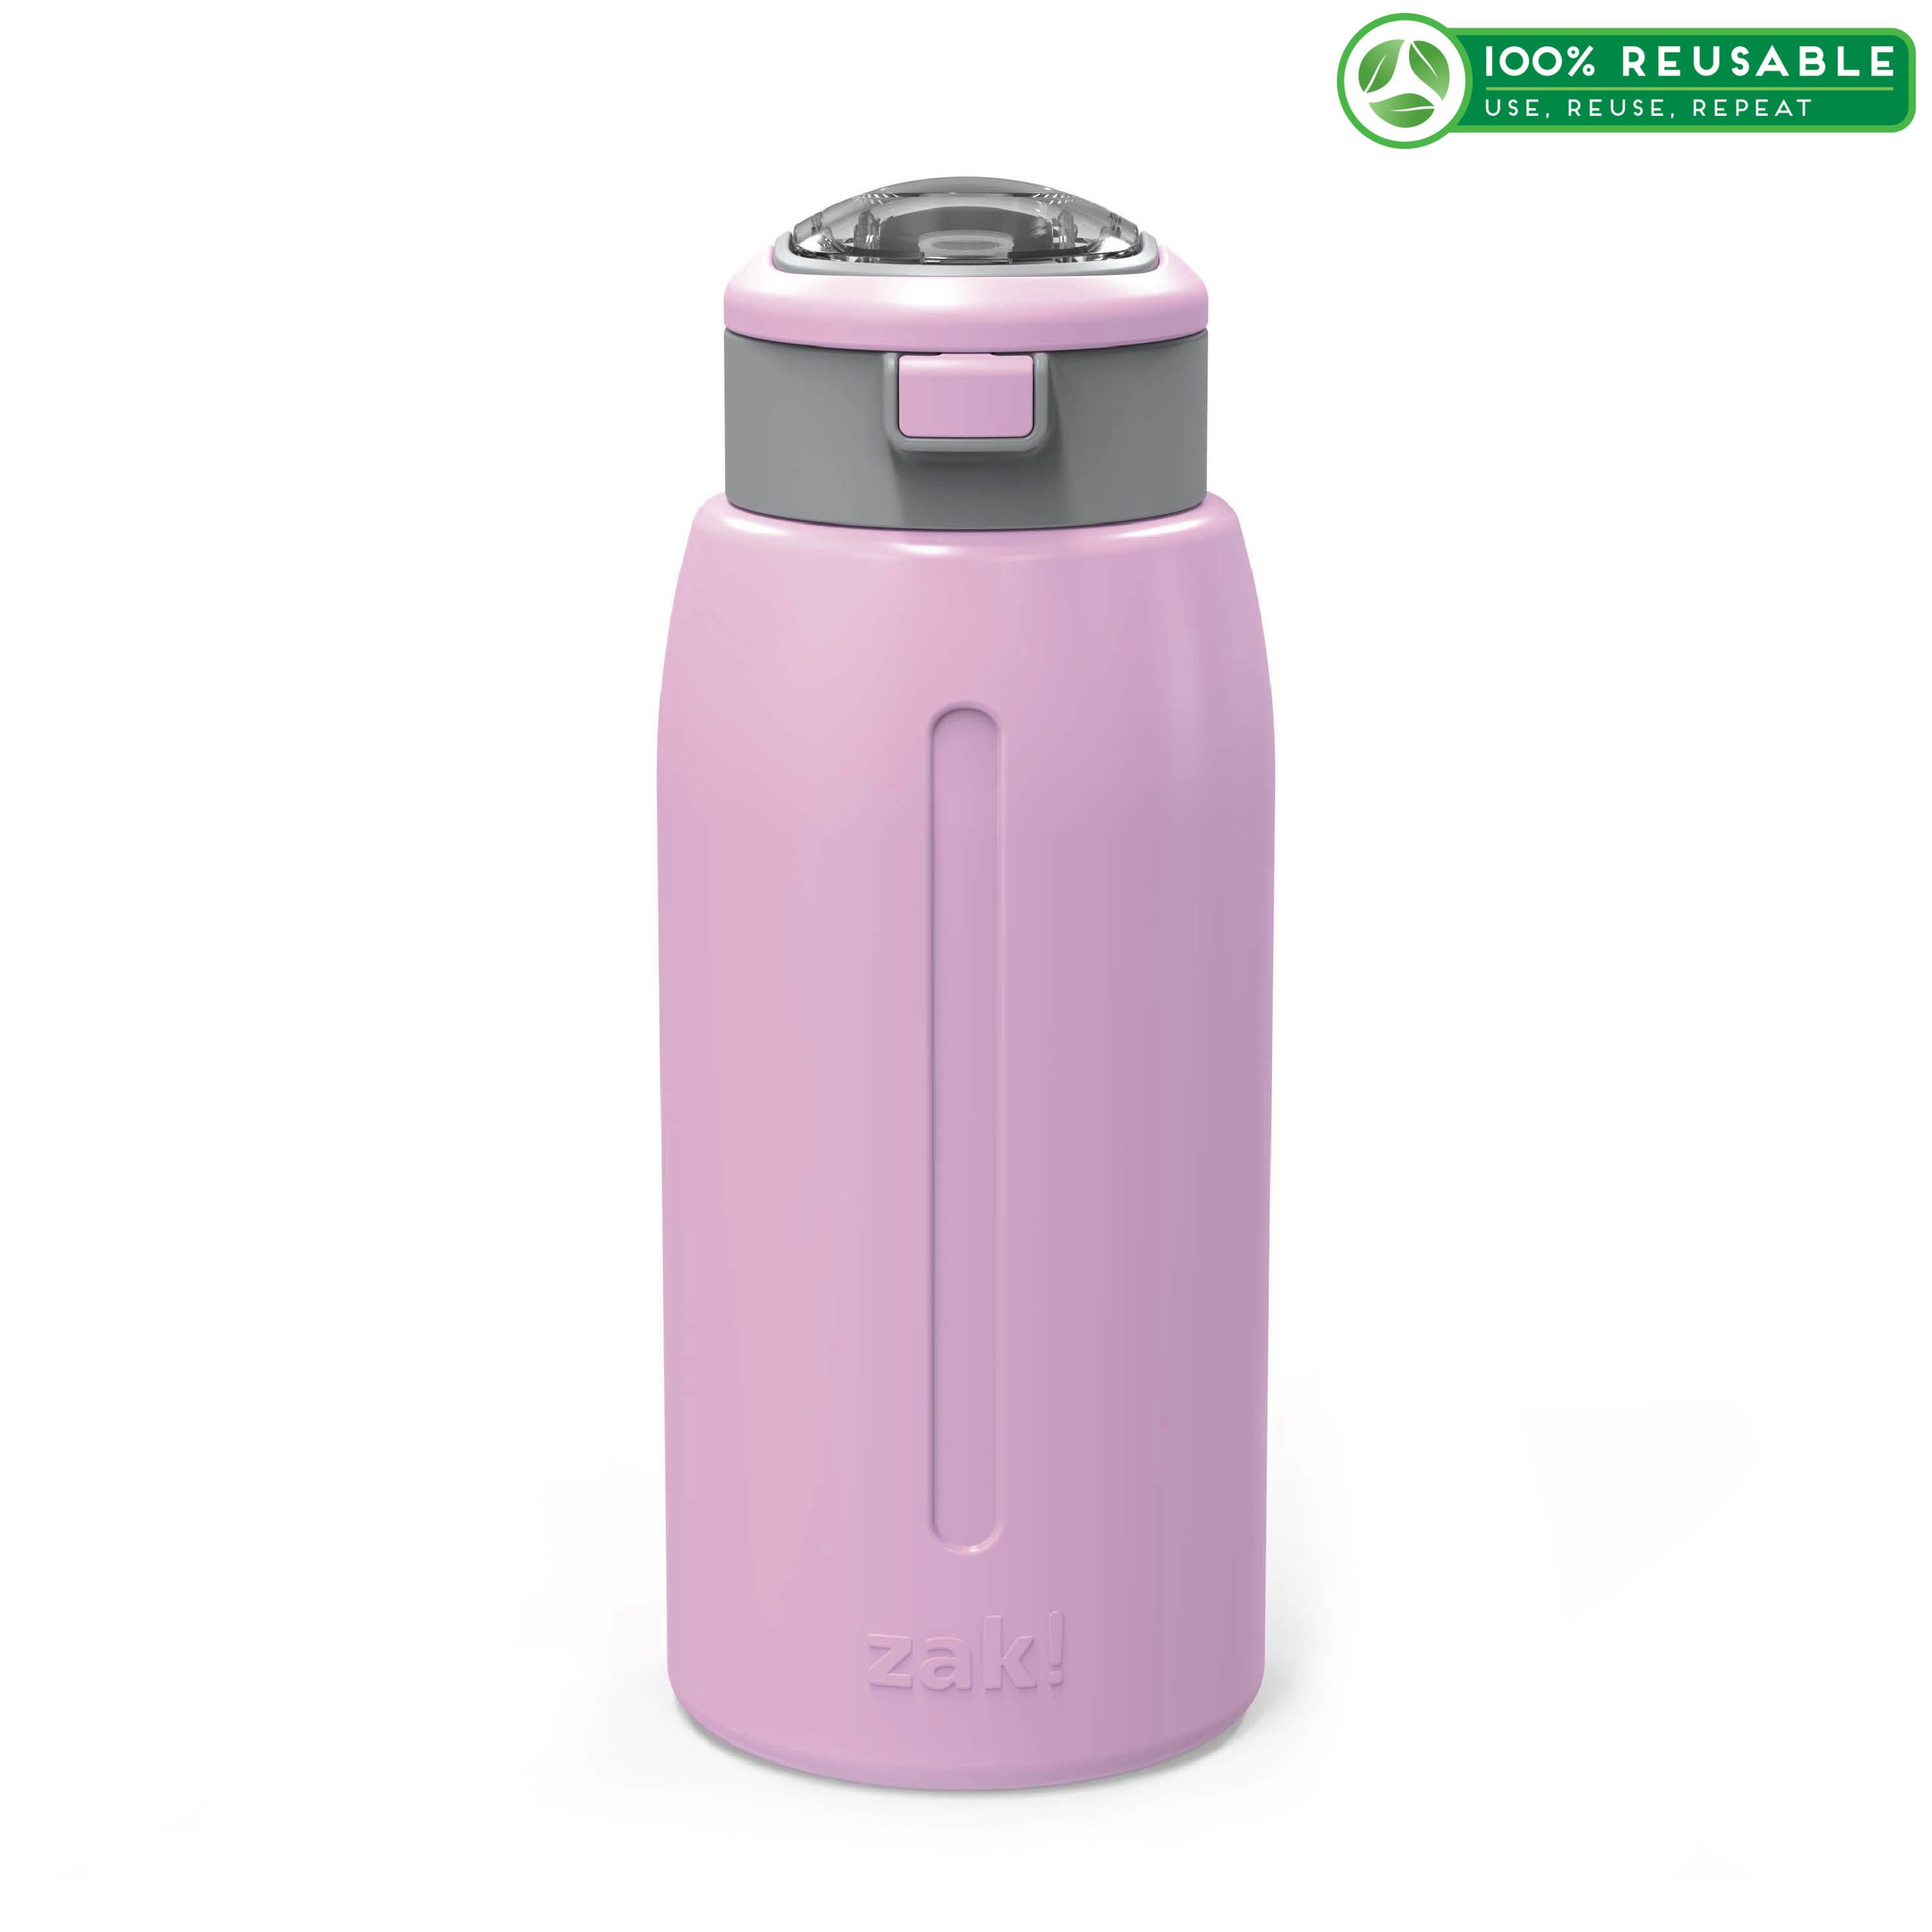 Genesis 32 ounce Stainless Steel Water Bottles, Lilac slideshow image 1